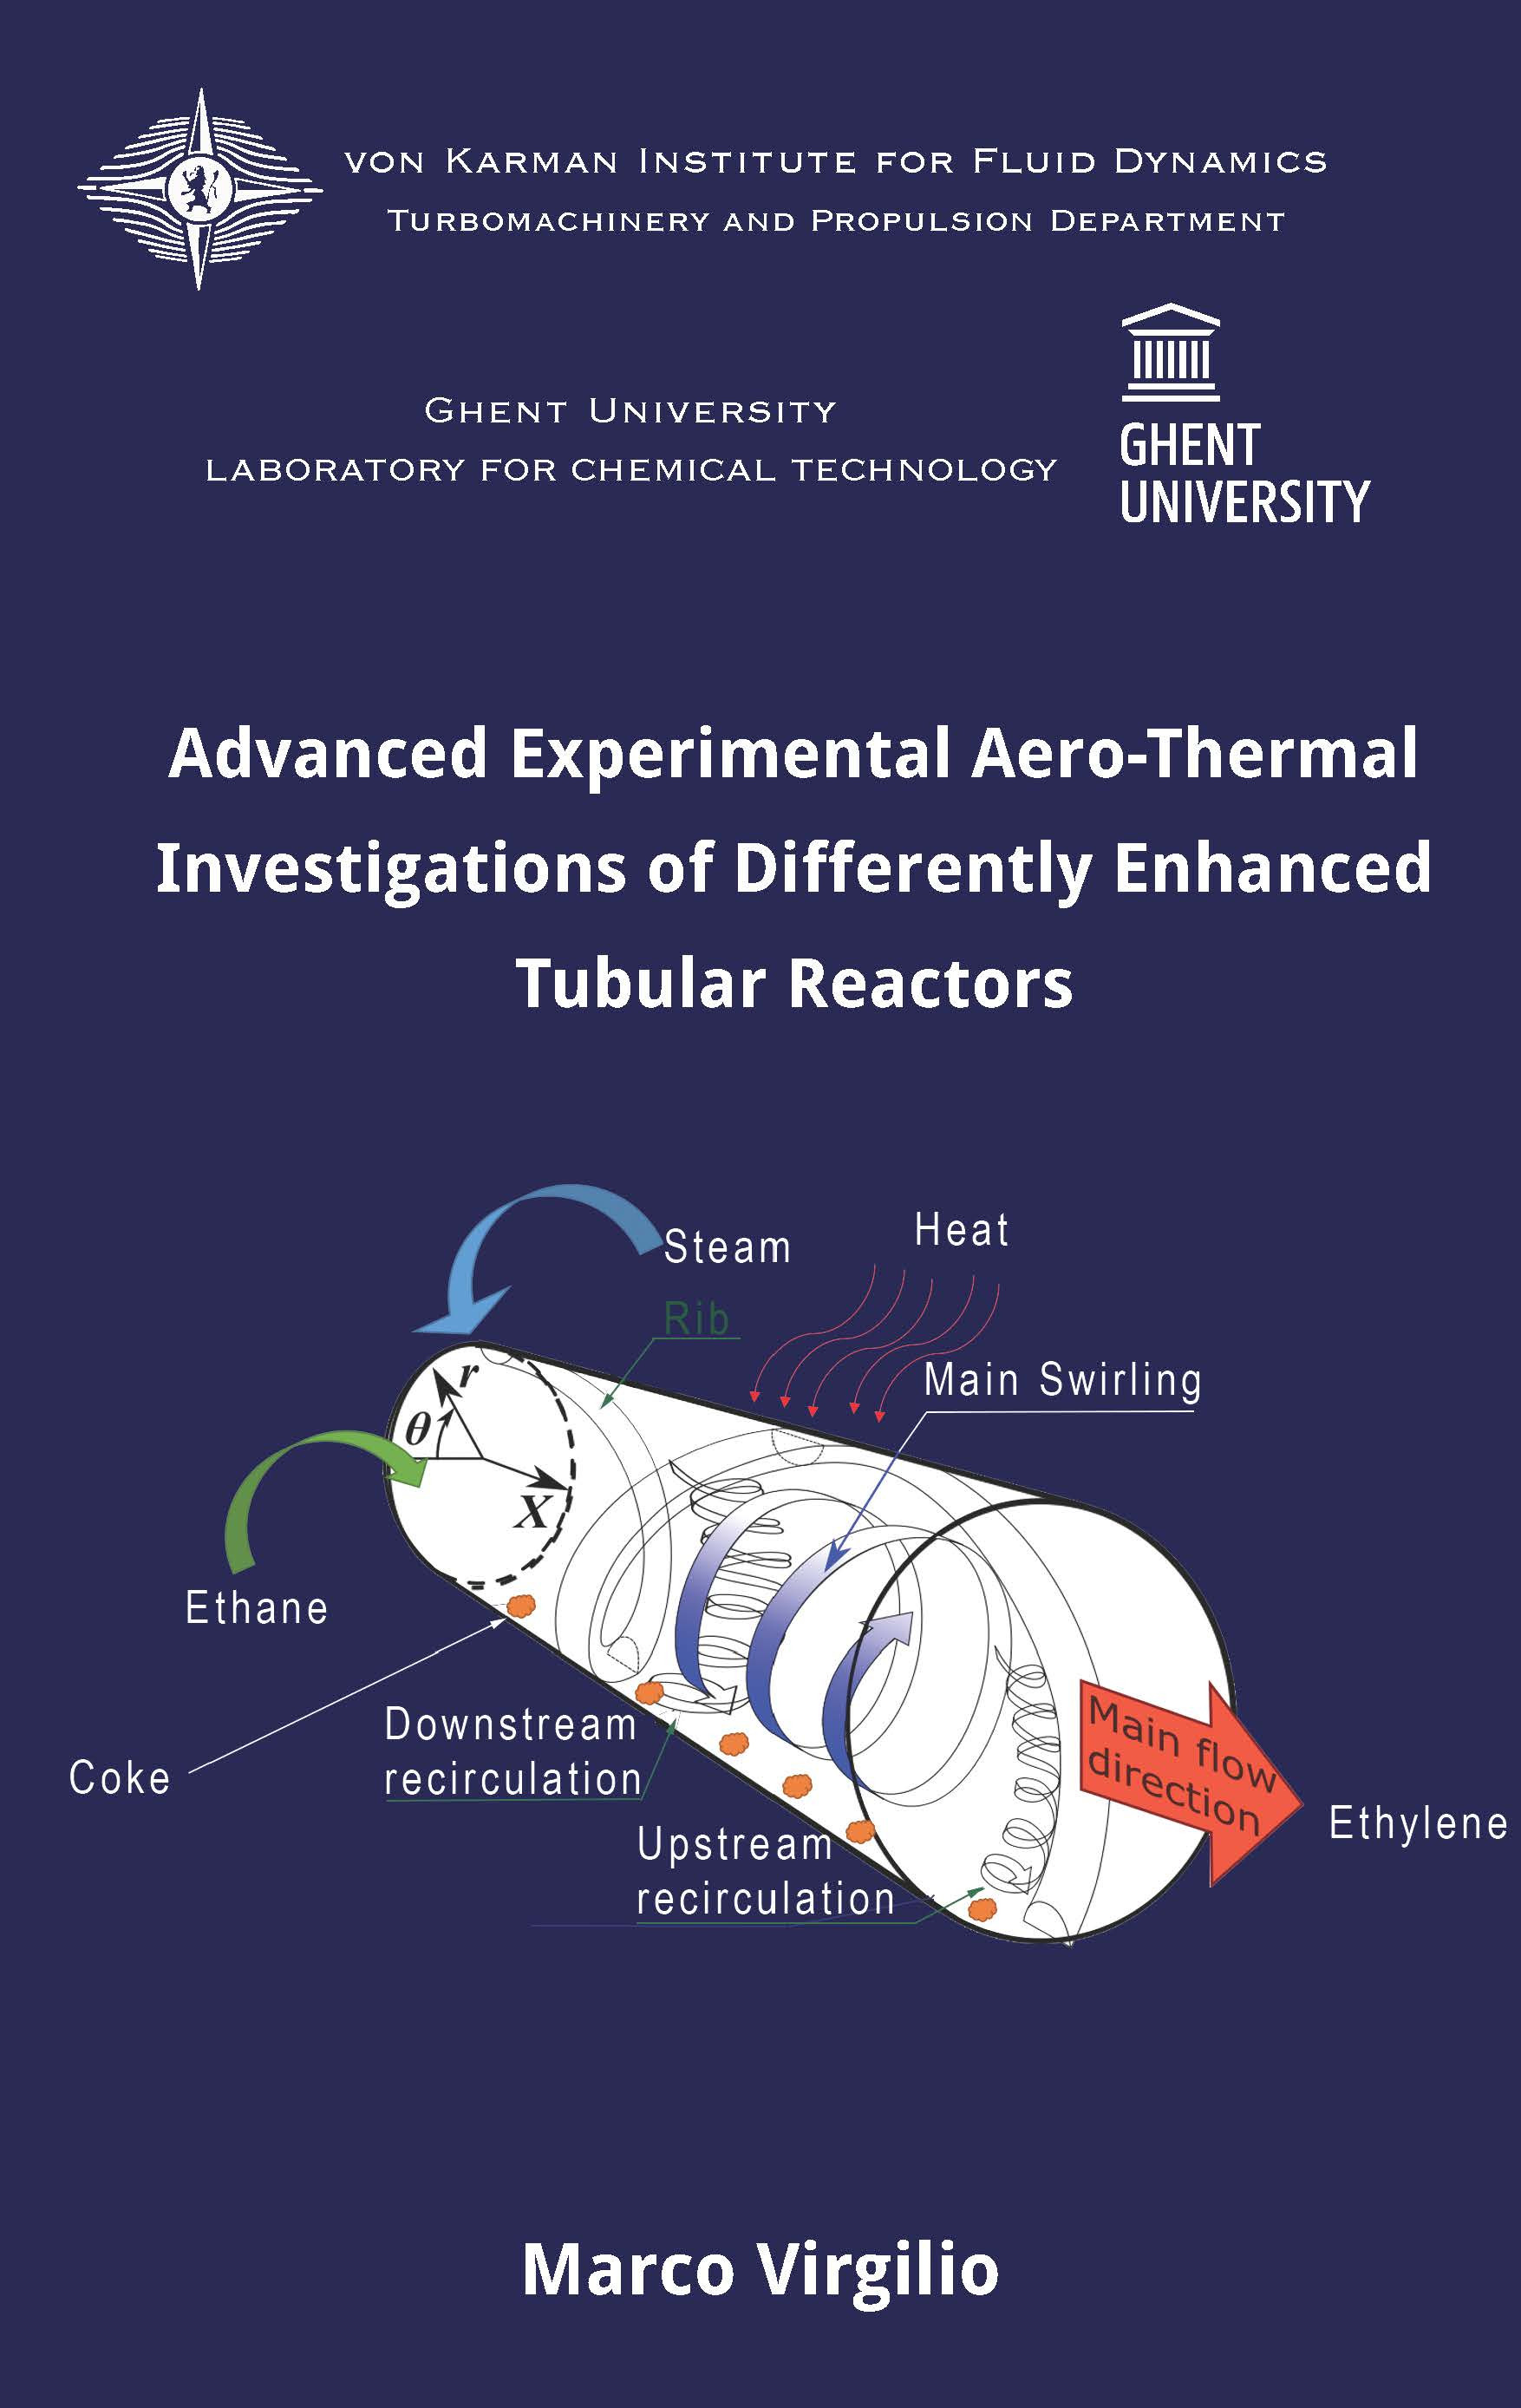 Advanced experimental aero-thermal investigations of differently enhanced tubular reactors  - Marco Virgilio - Ph.D. Thesis - Free download